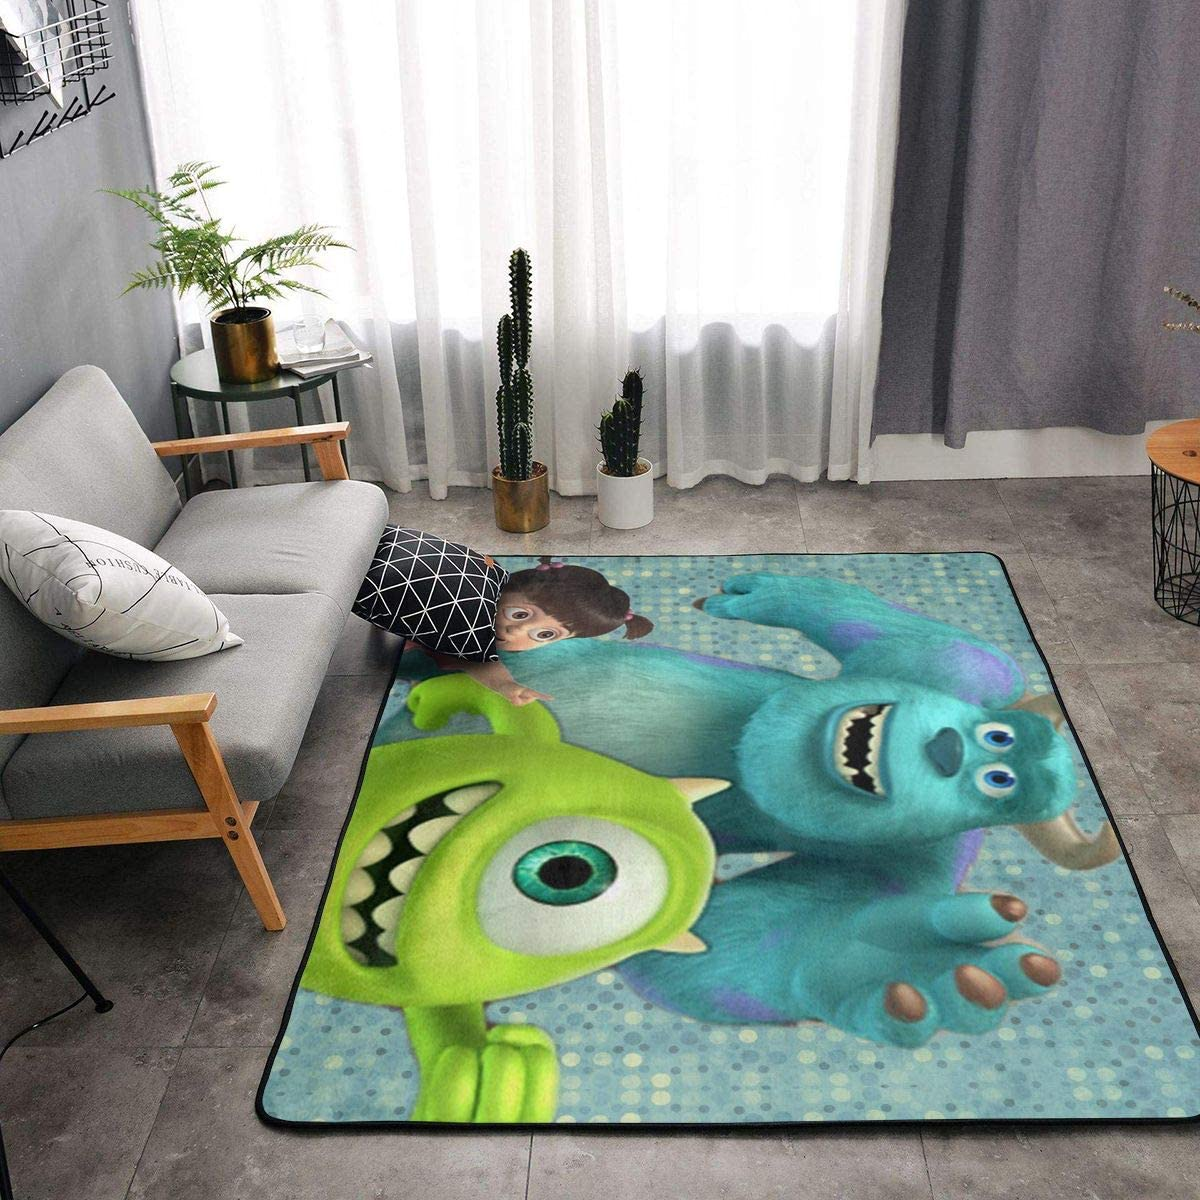 Monsters Inc Carpets Indoor Soft Rugs Living Room Area Rugs Suitable for Children Play Home Decorator Floor Bedroom Carpet 63 X 48 Inches,White,One Size